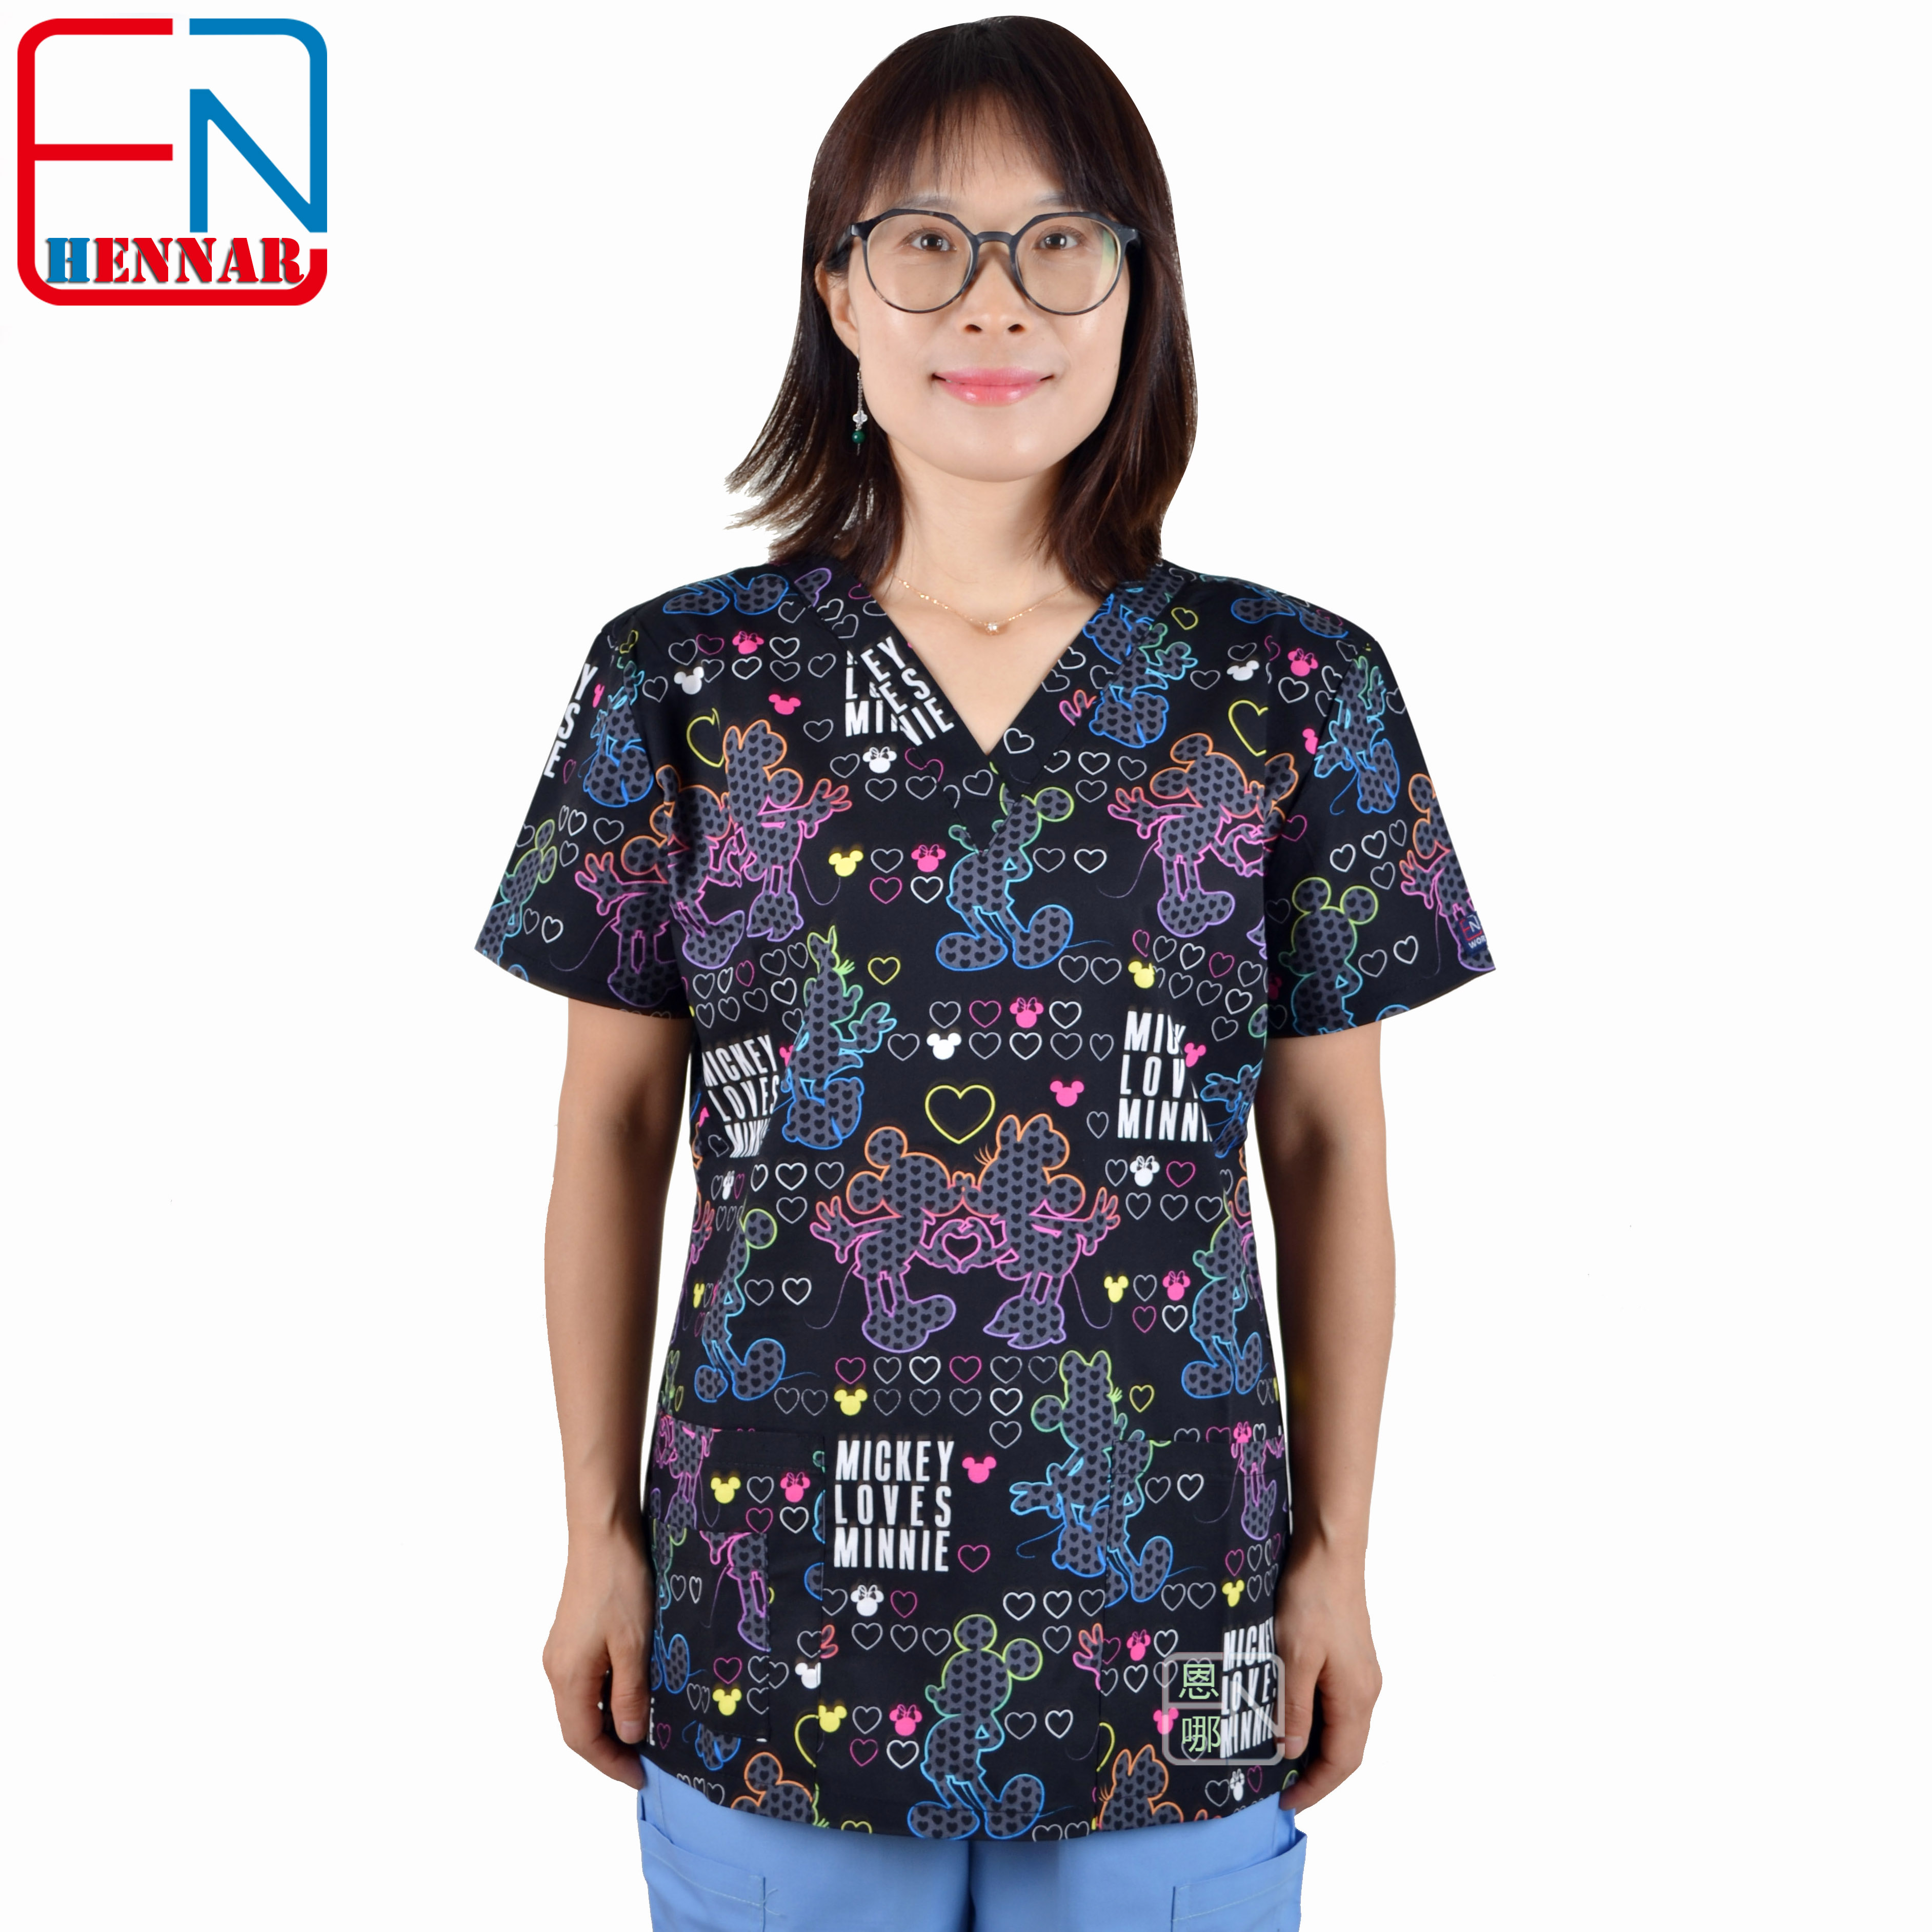 Hennar Women Scrub Tops Medical With V Neck 100% Cotton Surgical Short Sleeve Cartoon Print 2019 High Quality Scrubs Top Female